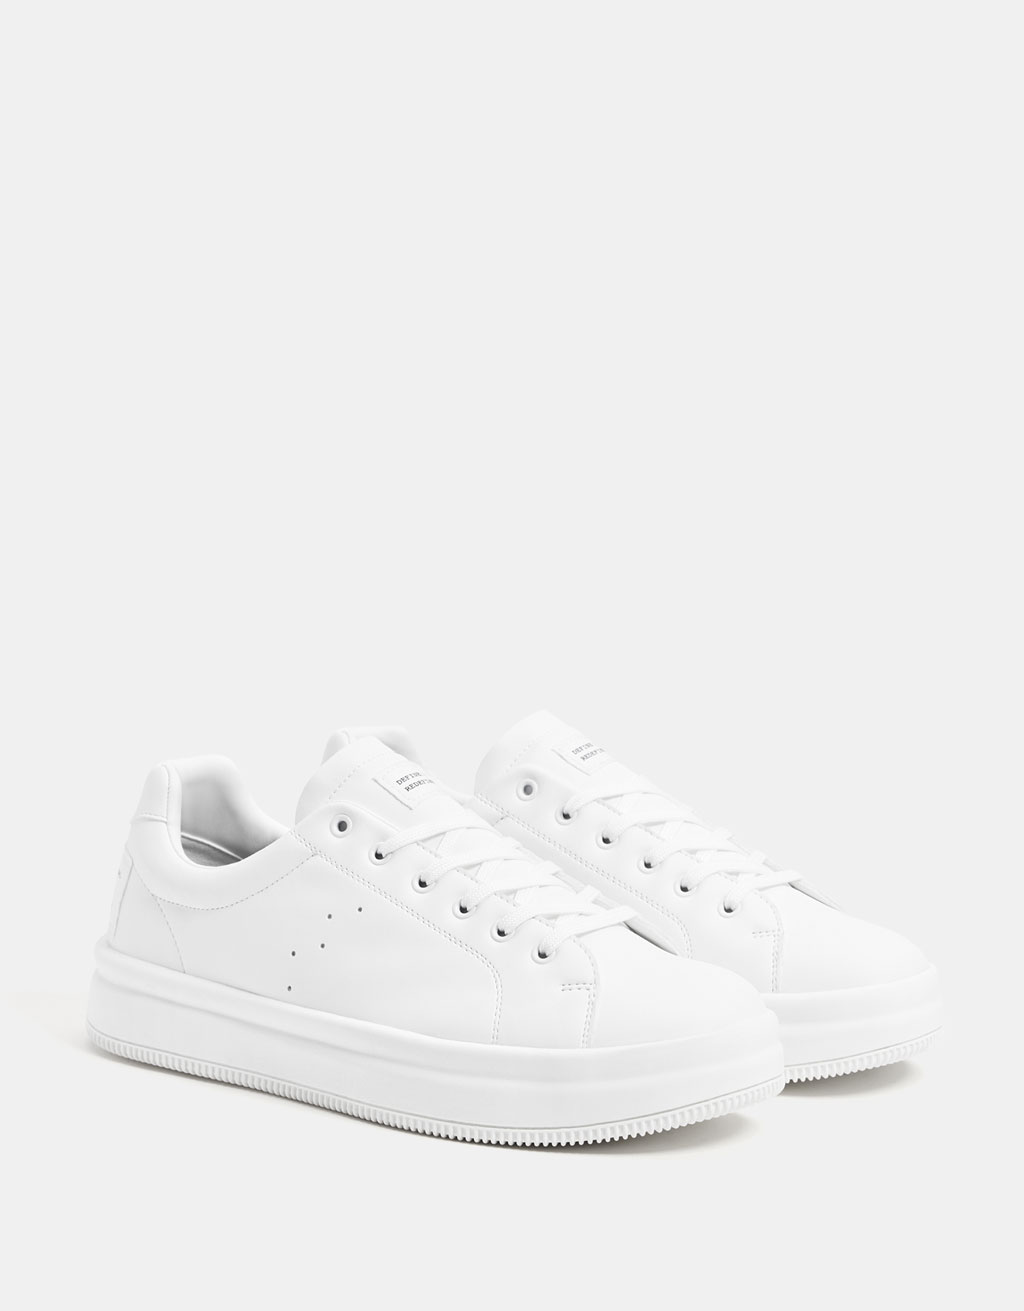 Monochrome sneakers with slogan